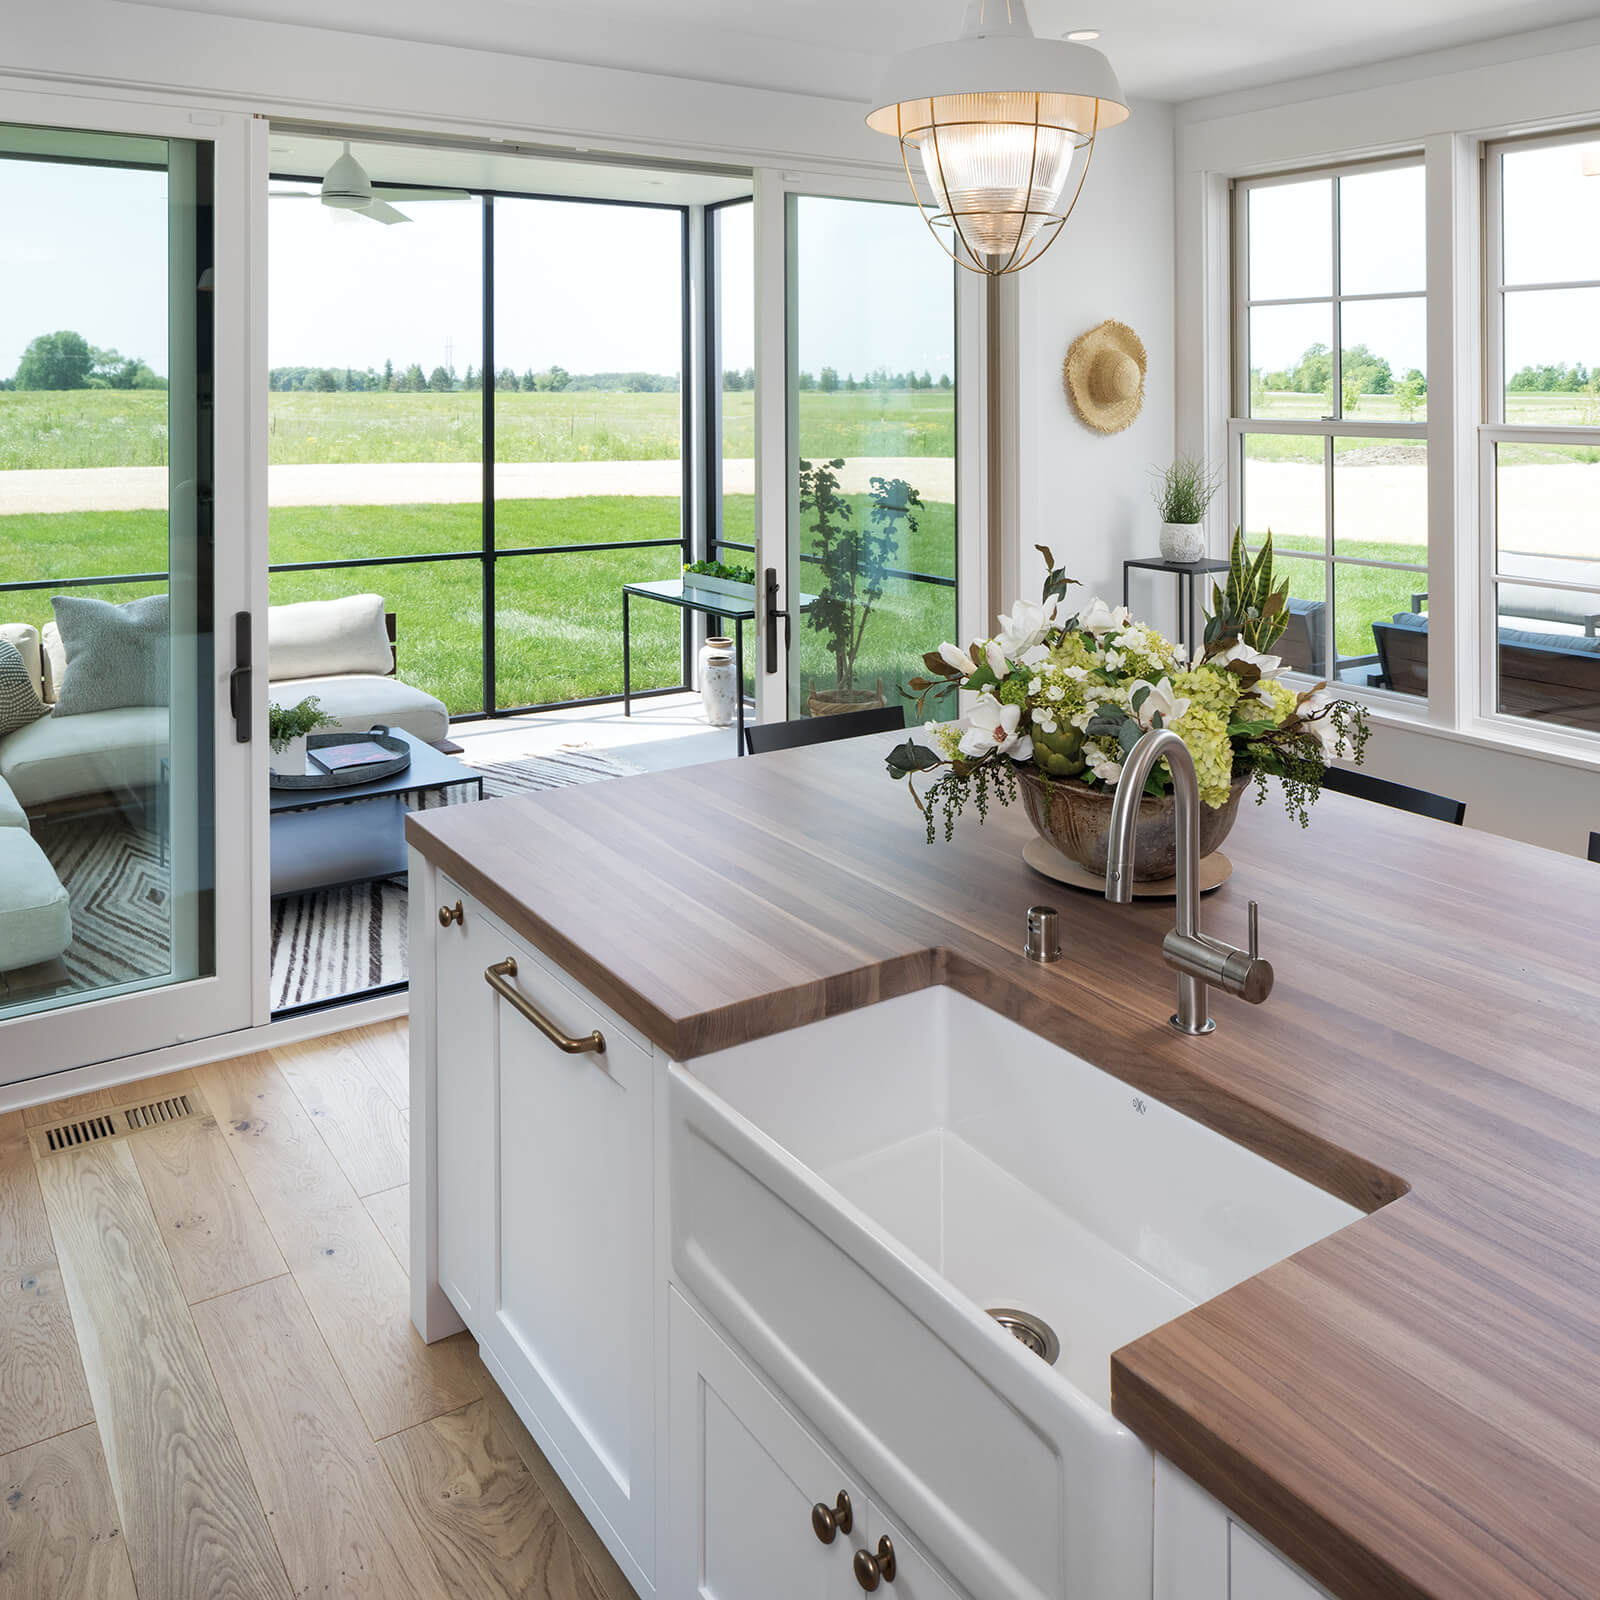 Open concept kitchen with Marvin Elevate Double Hung Windows